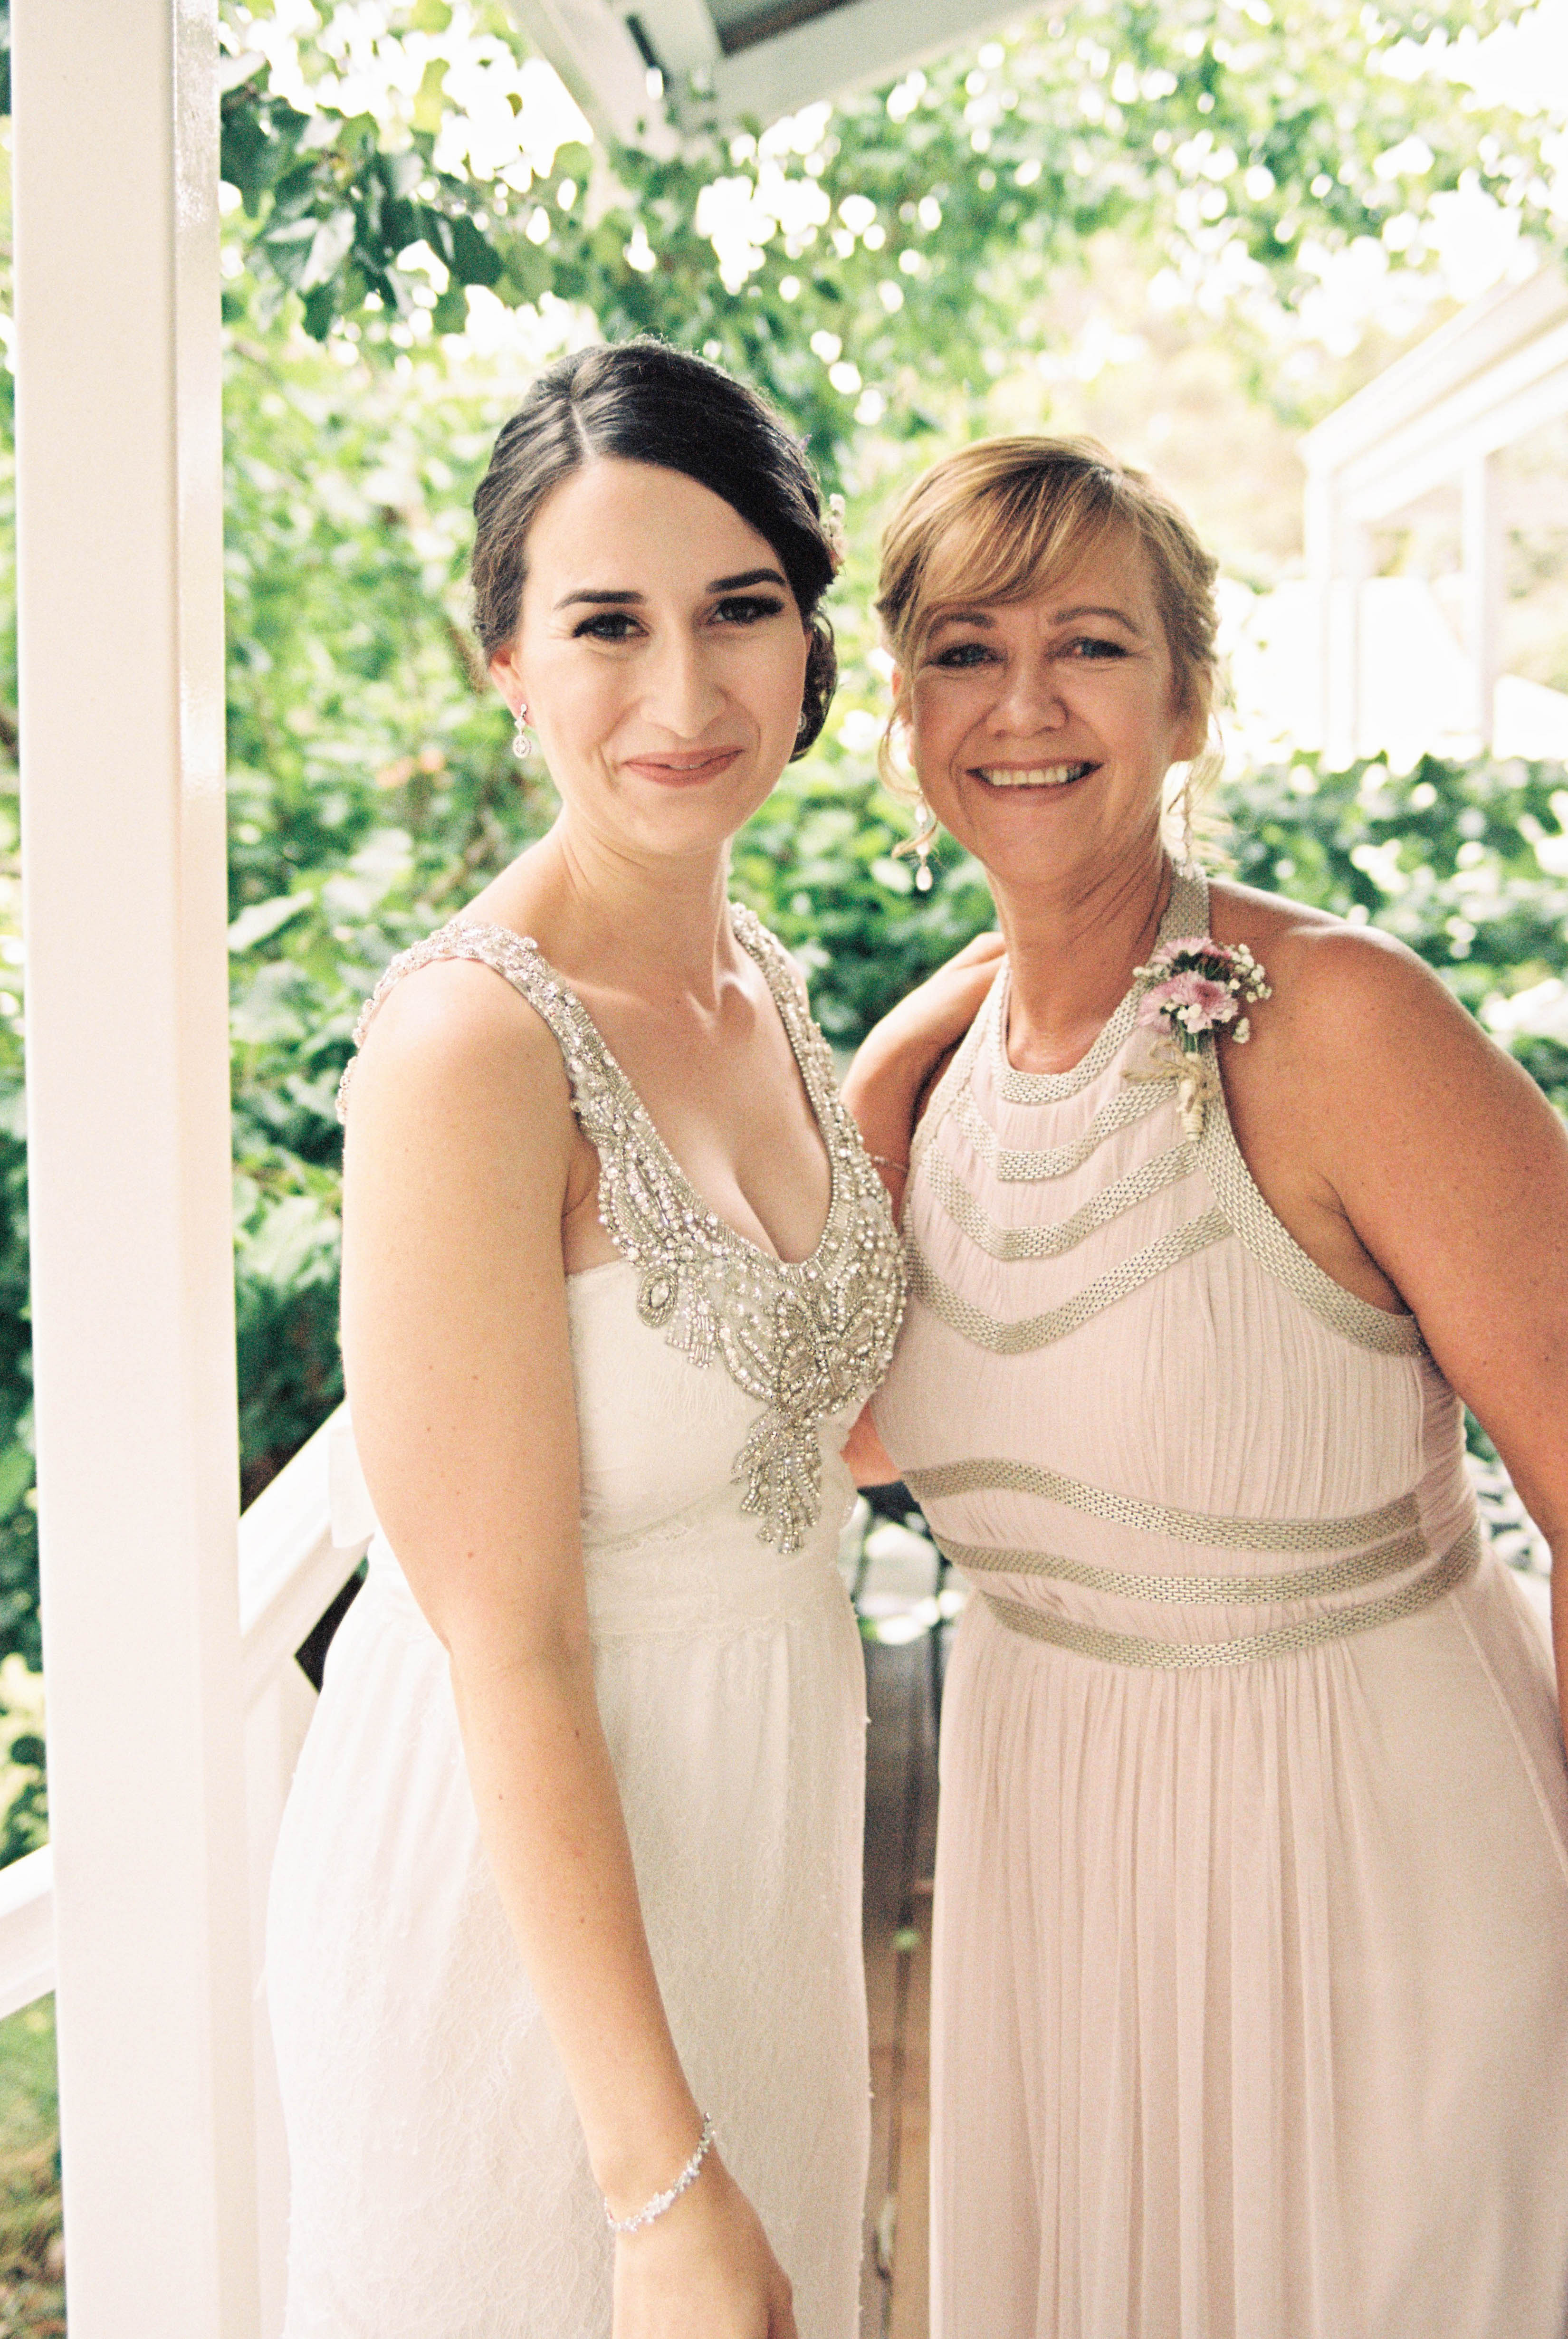 A portrait photo of the bride & her Mum the morning before her wedding in the South West taken by Rhianna May Wedding Photographer